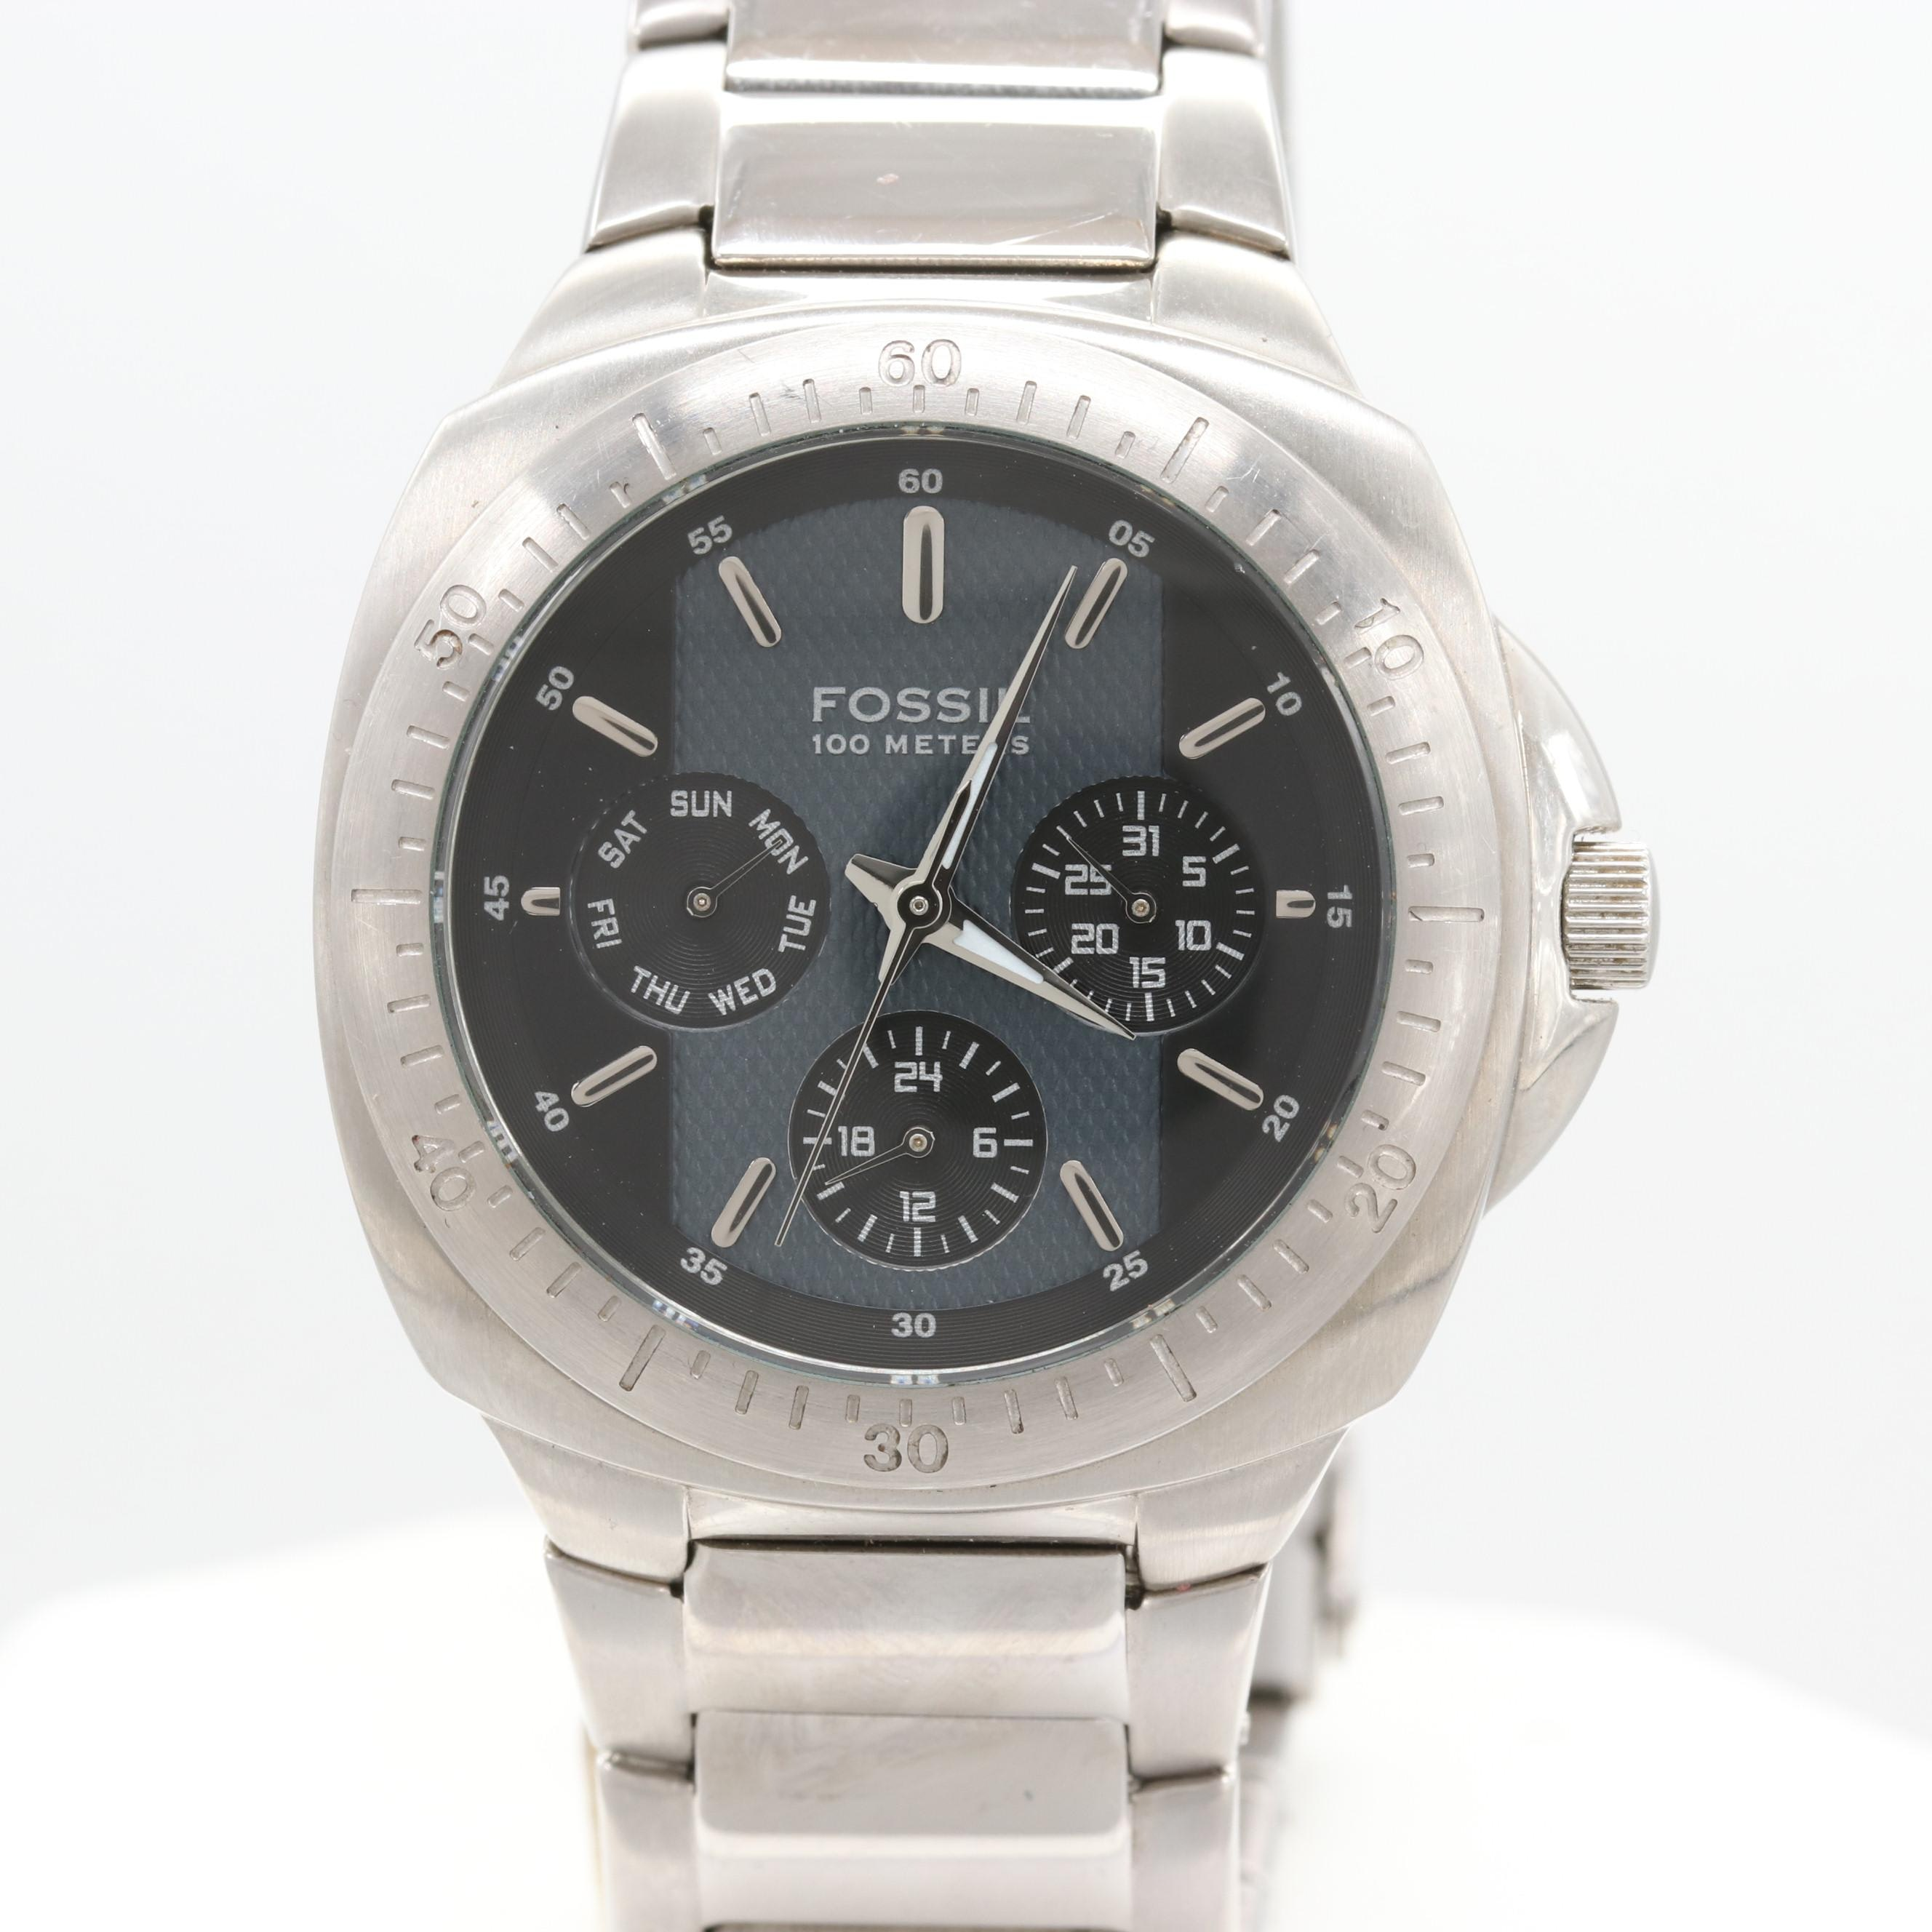 Fossil Blue Stainless Steel Model BQ9237 Wristwatch